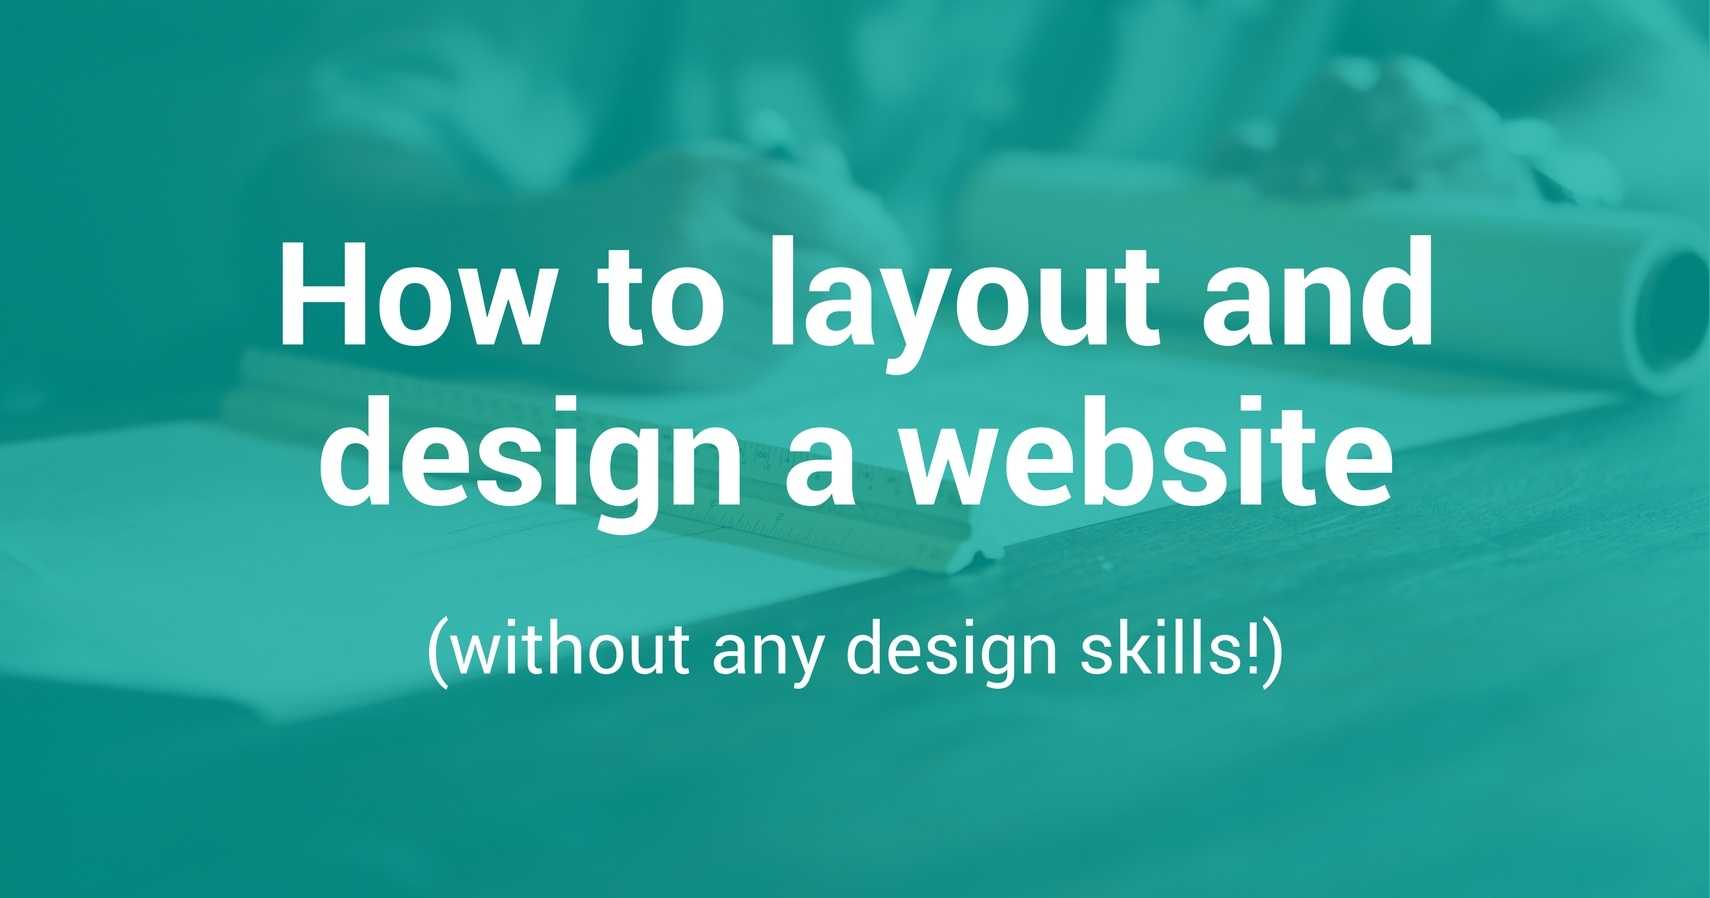 how-to-layout-design-website